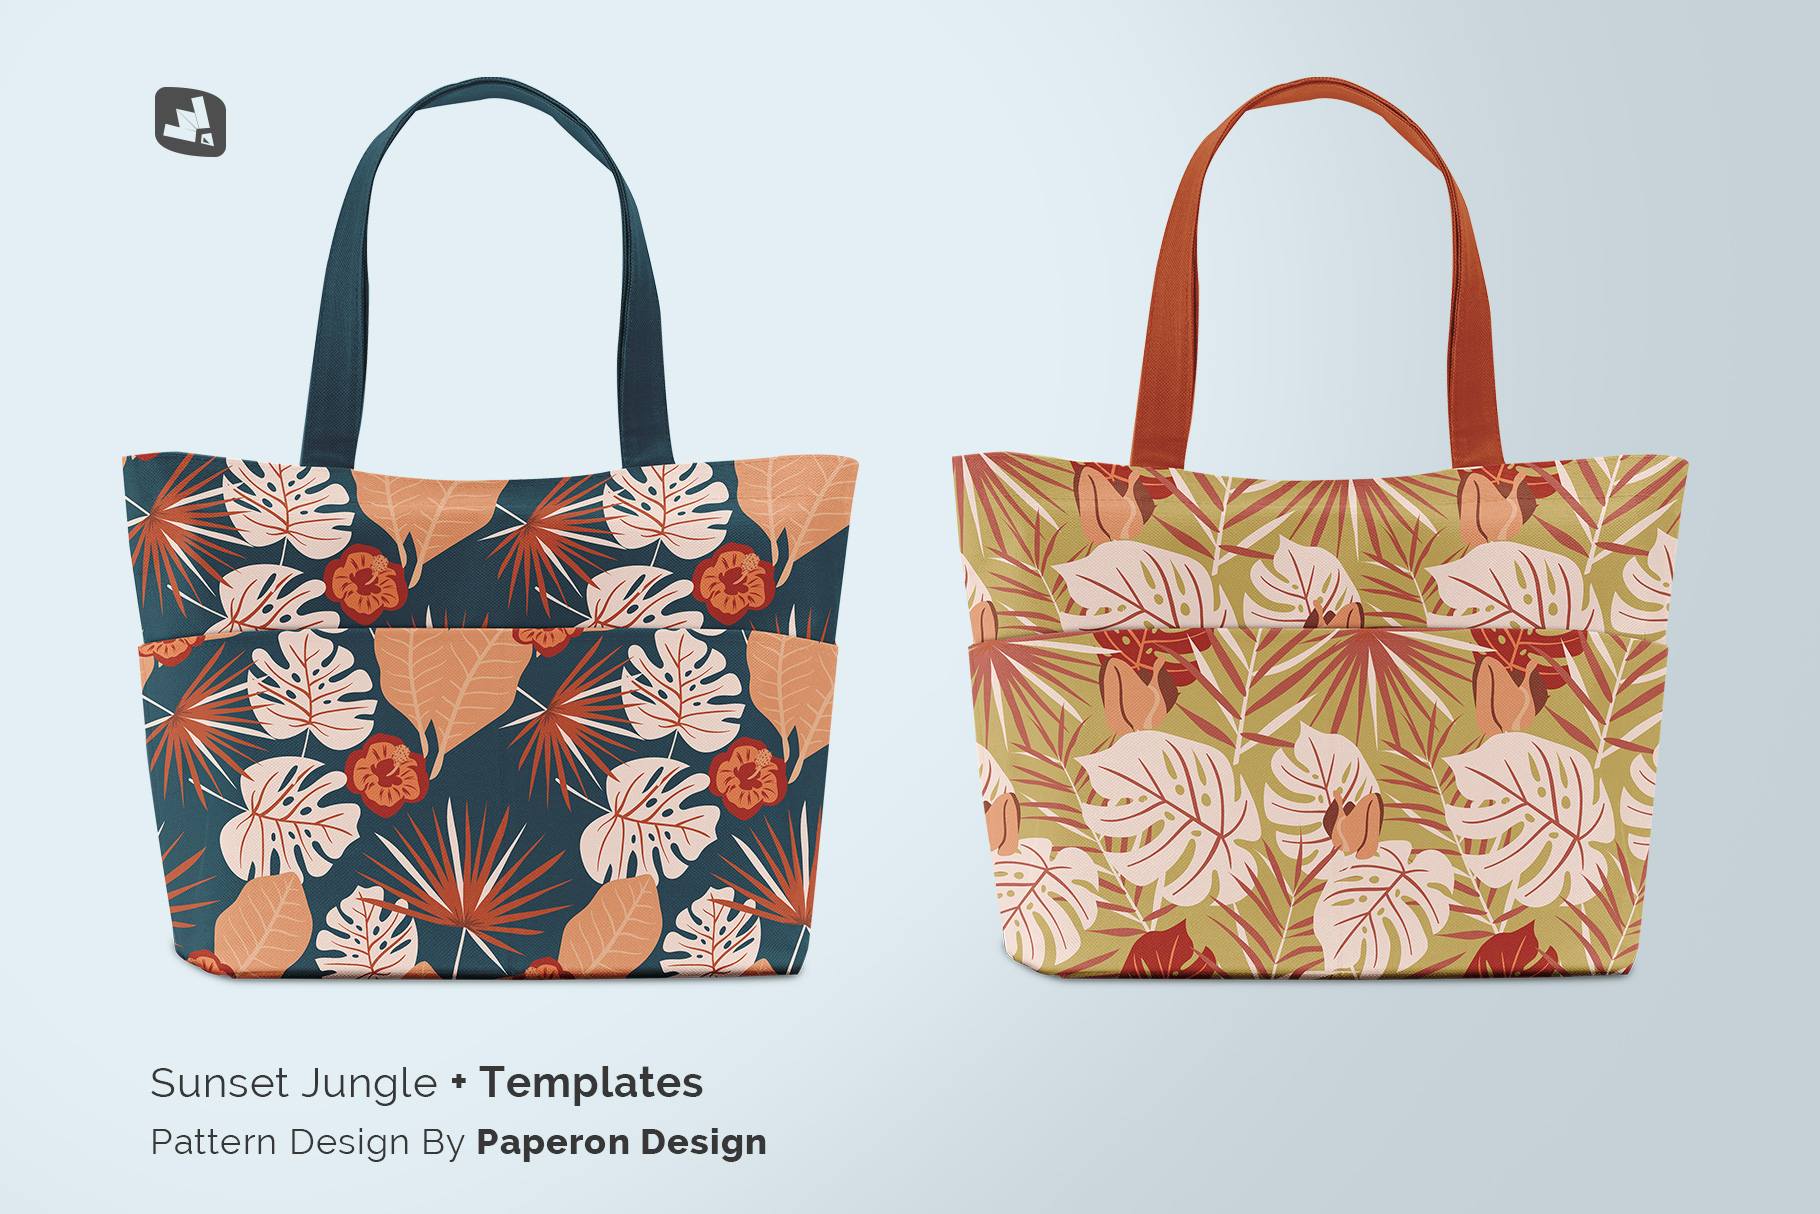 designer's credit of the front view fabric shopping bag mockup